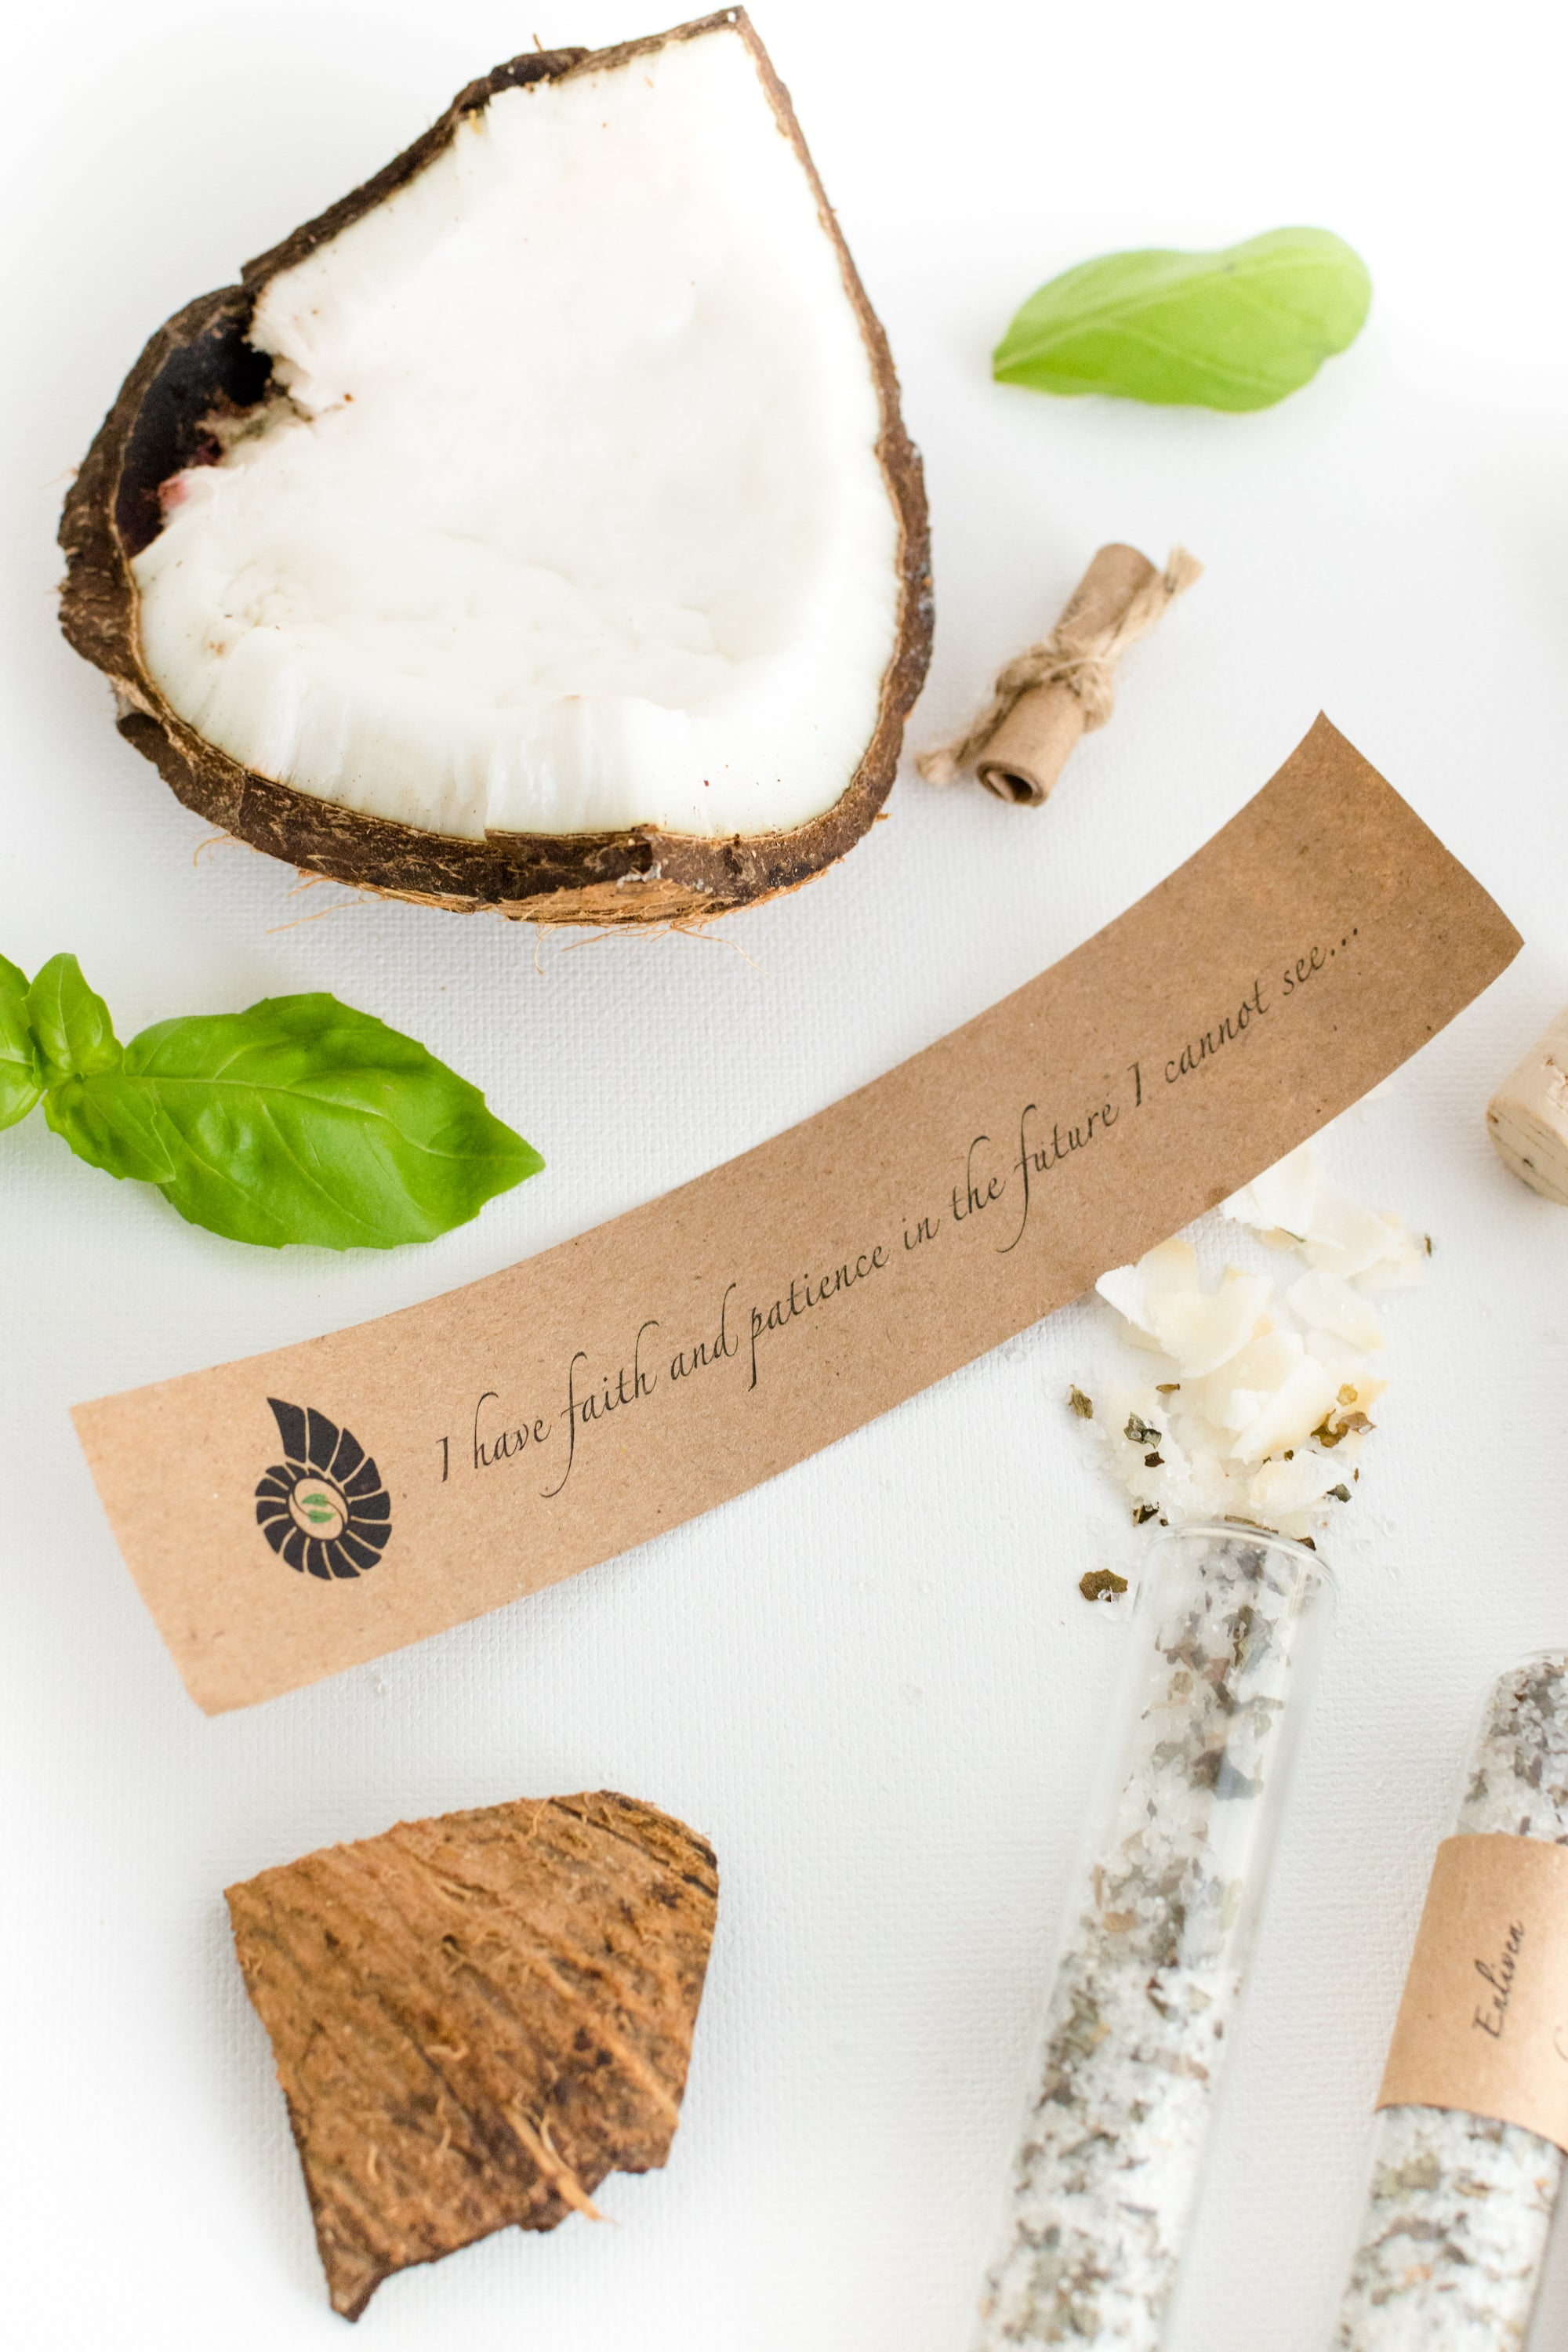 Truly Aesthetic Enliven Coconut Basil Bath Affirmations Bath Salts and Positive Affirmation Close Up